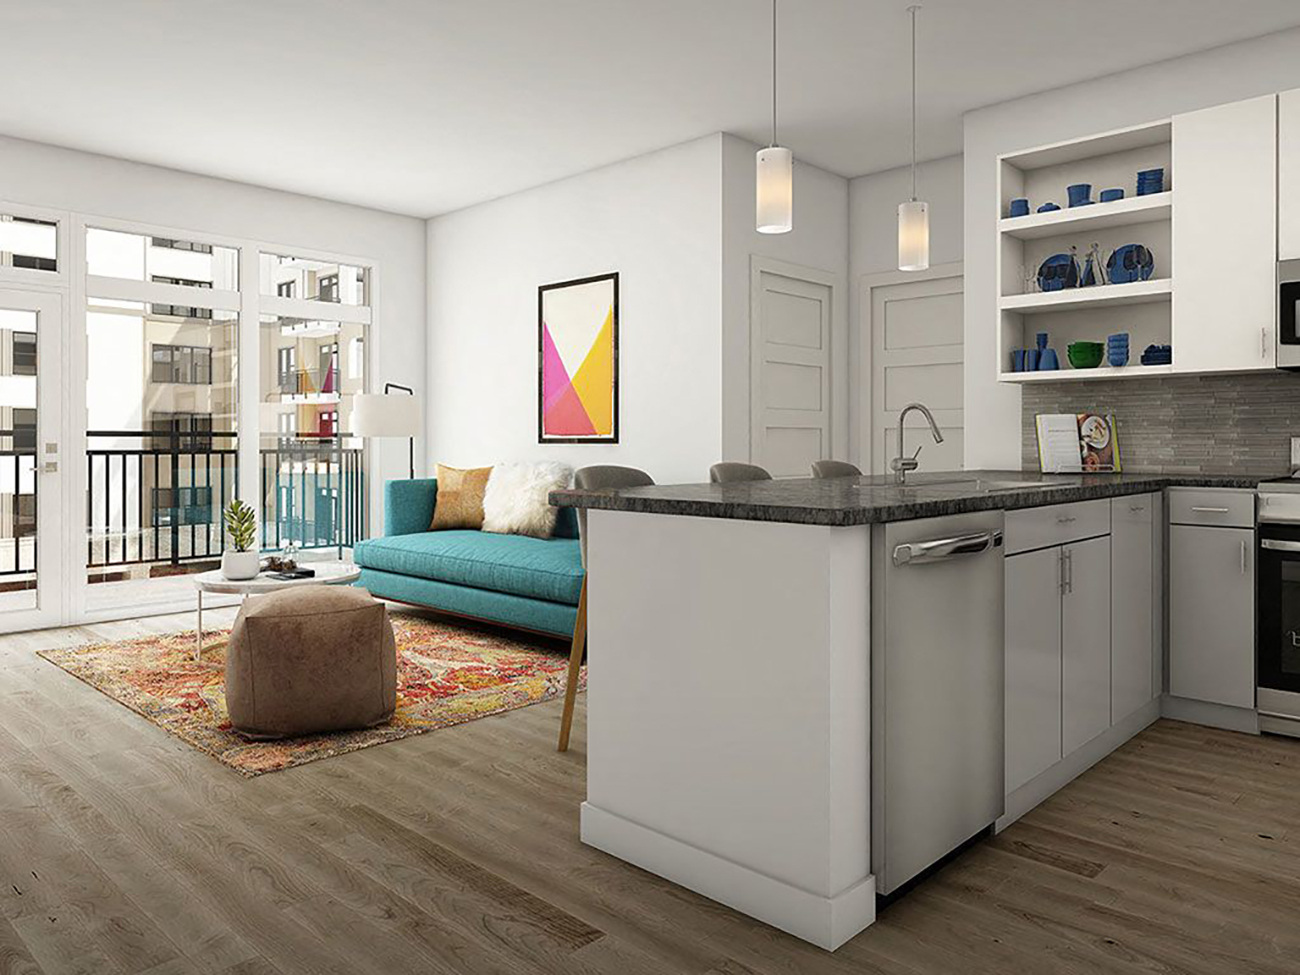 Apartments: Today's deals at every price point, from $800 to $1,600 a month.